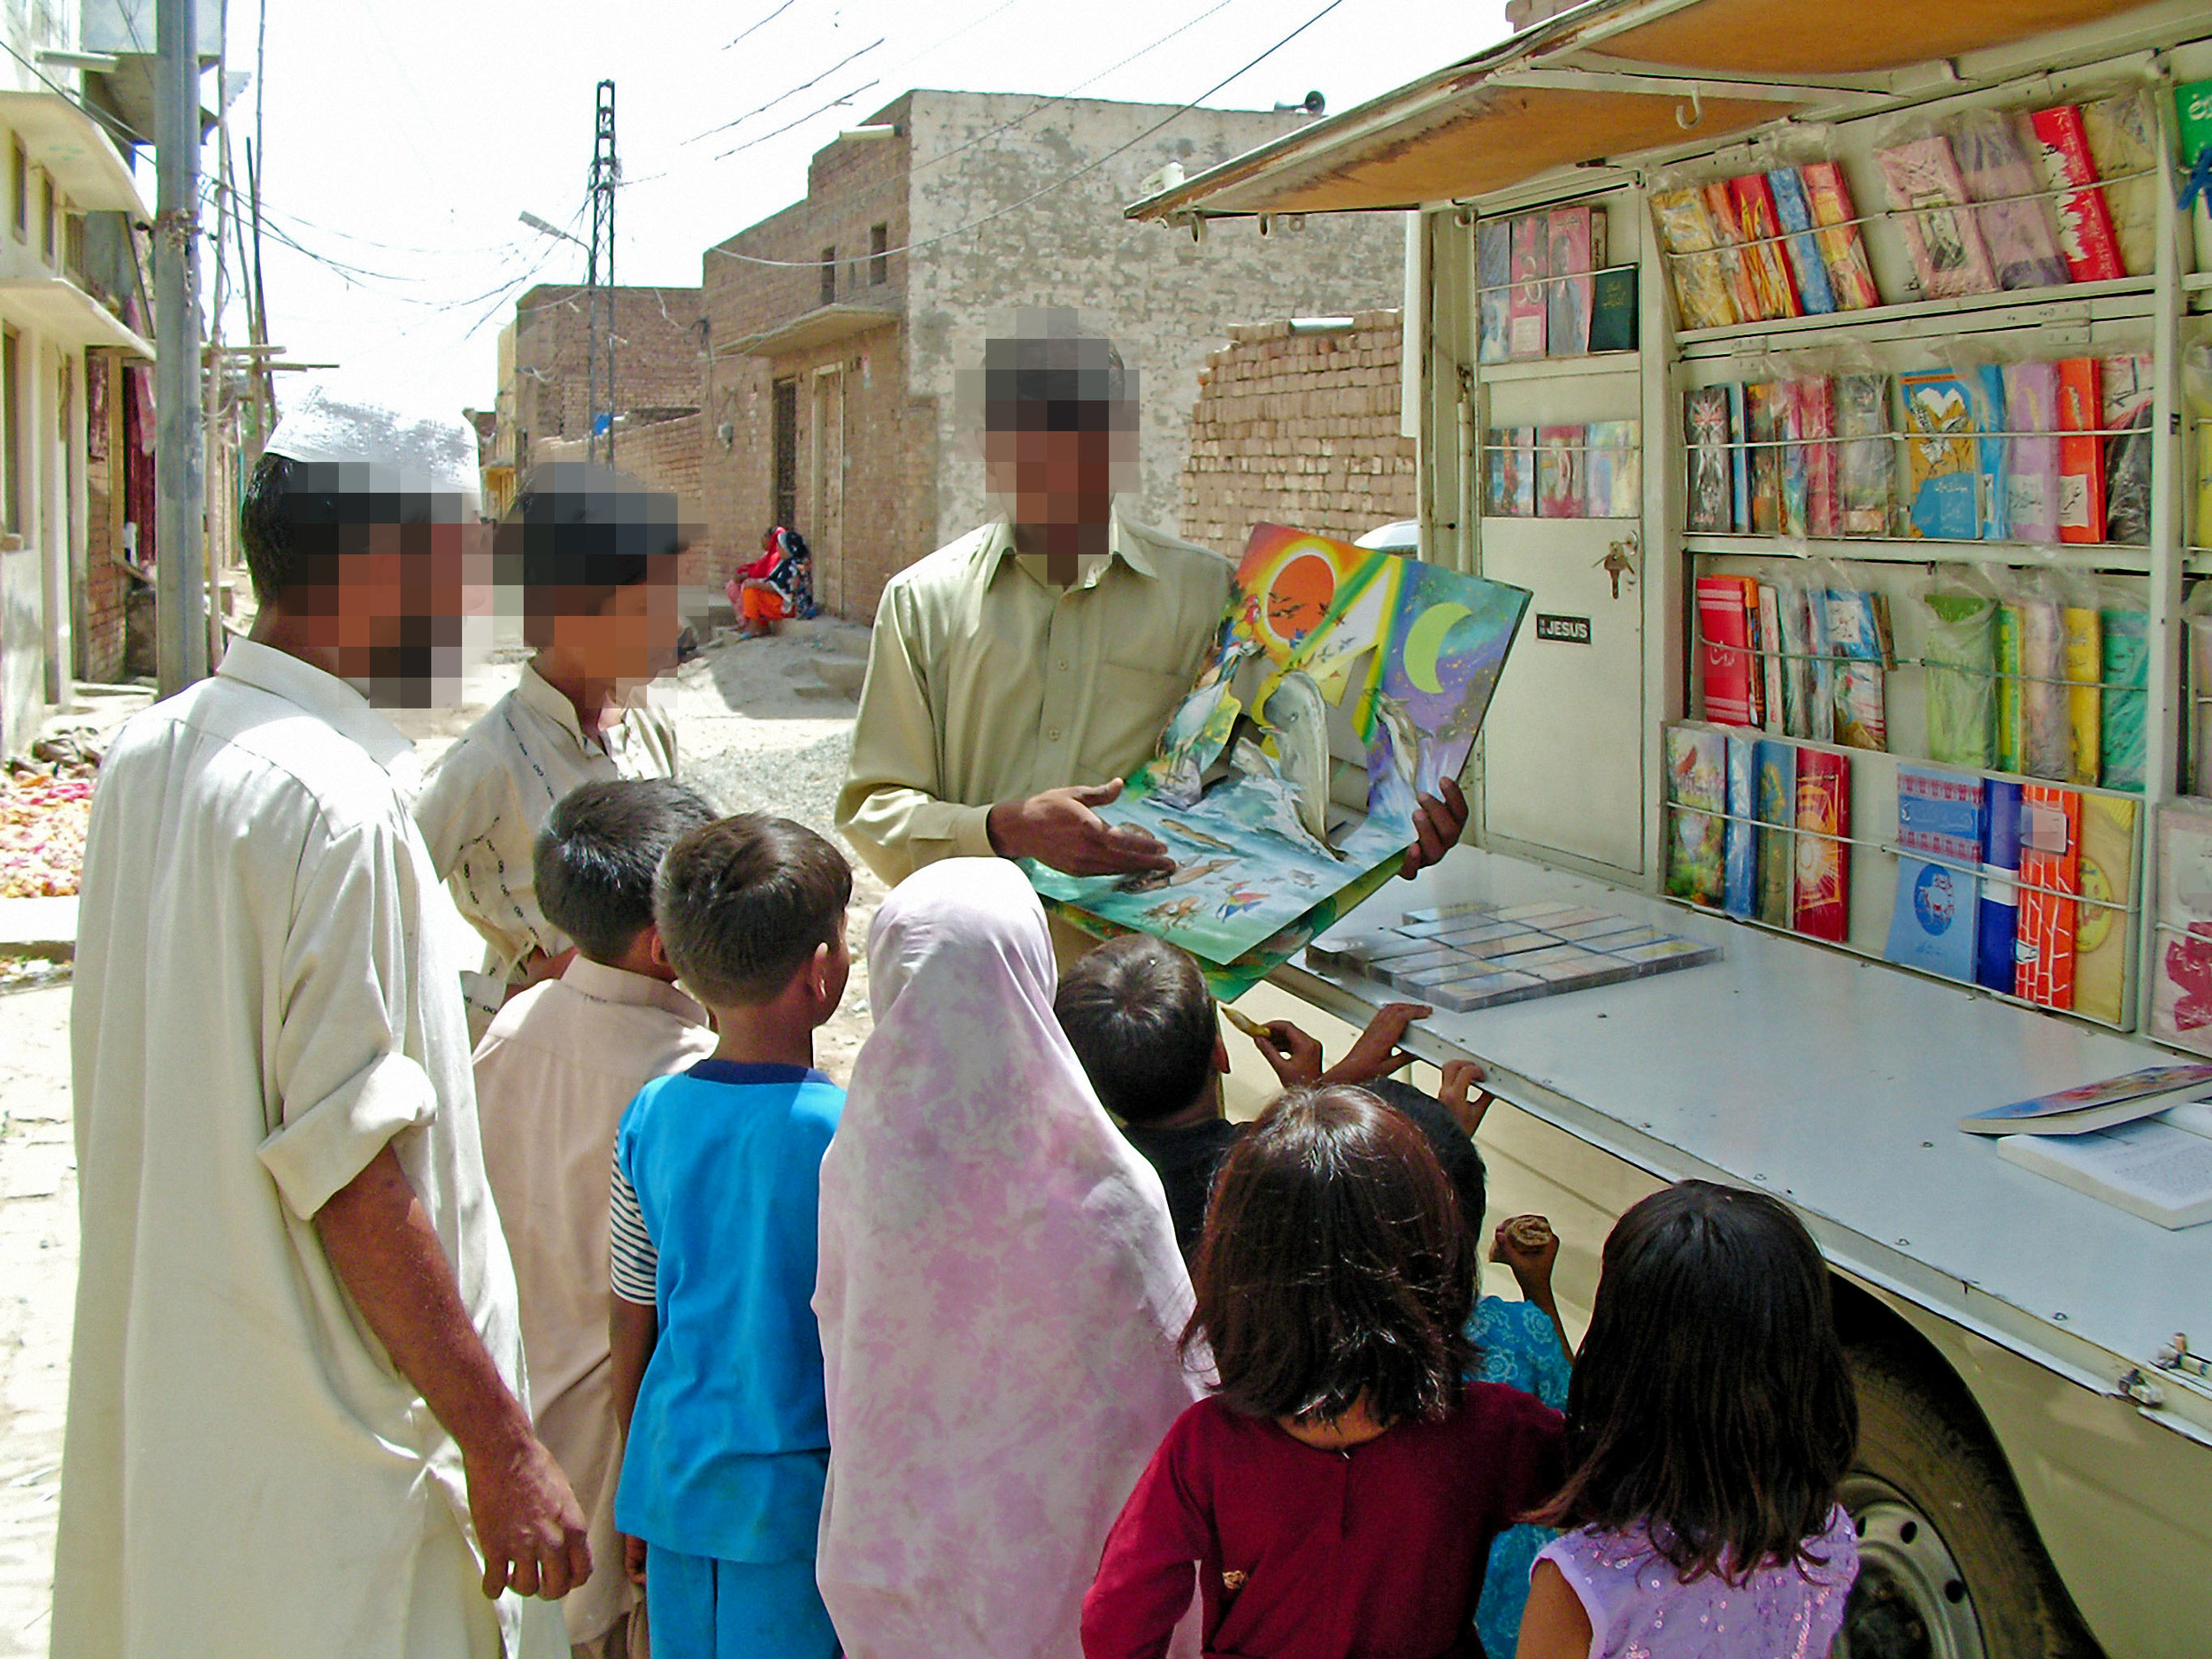 The book van has been distributing books and building relationships in tiny villages across this predominantly muslim part of South Asia for 35 years.